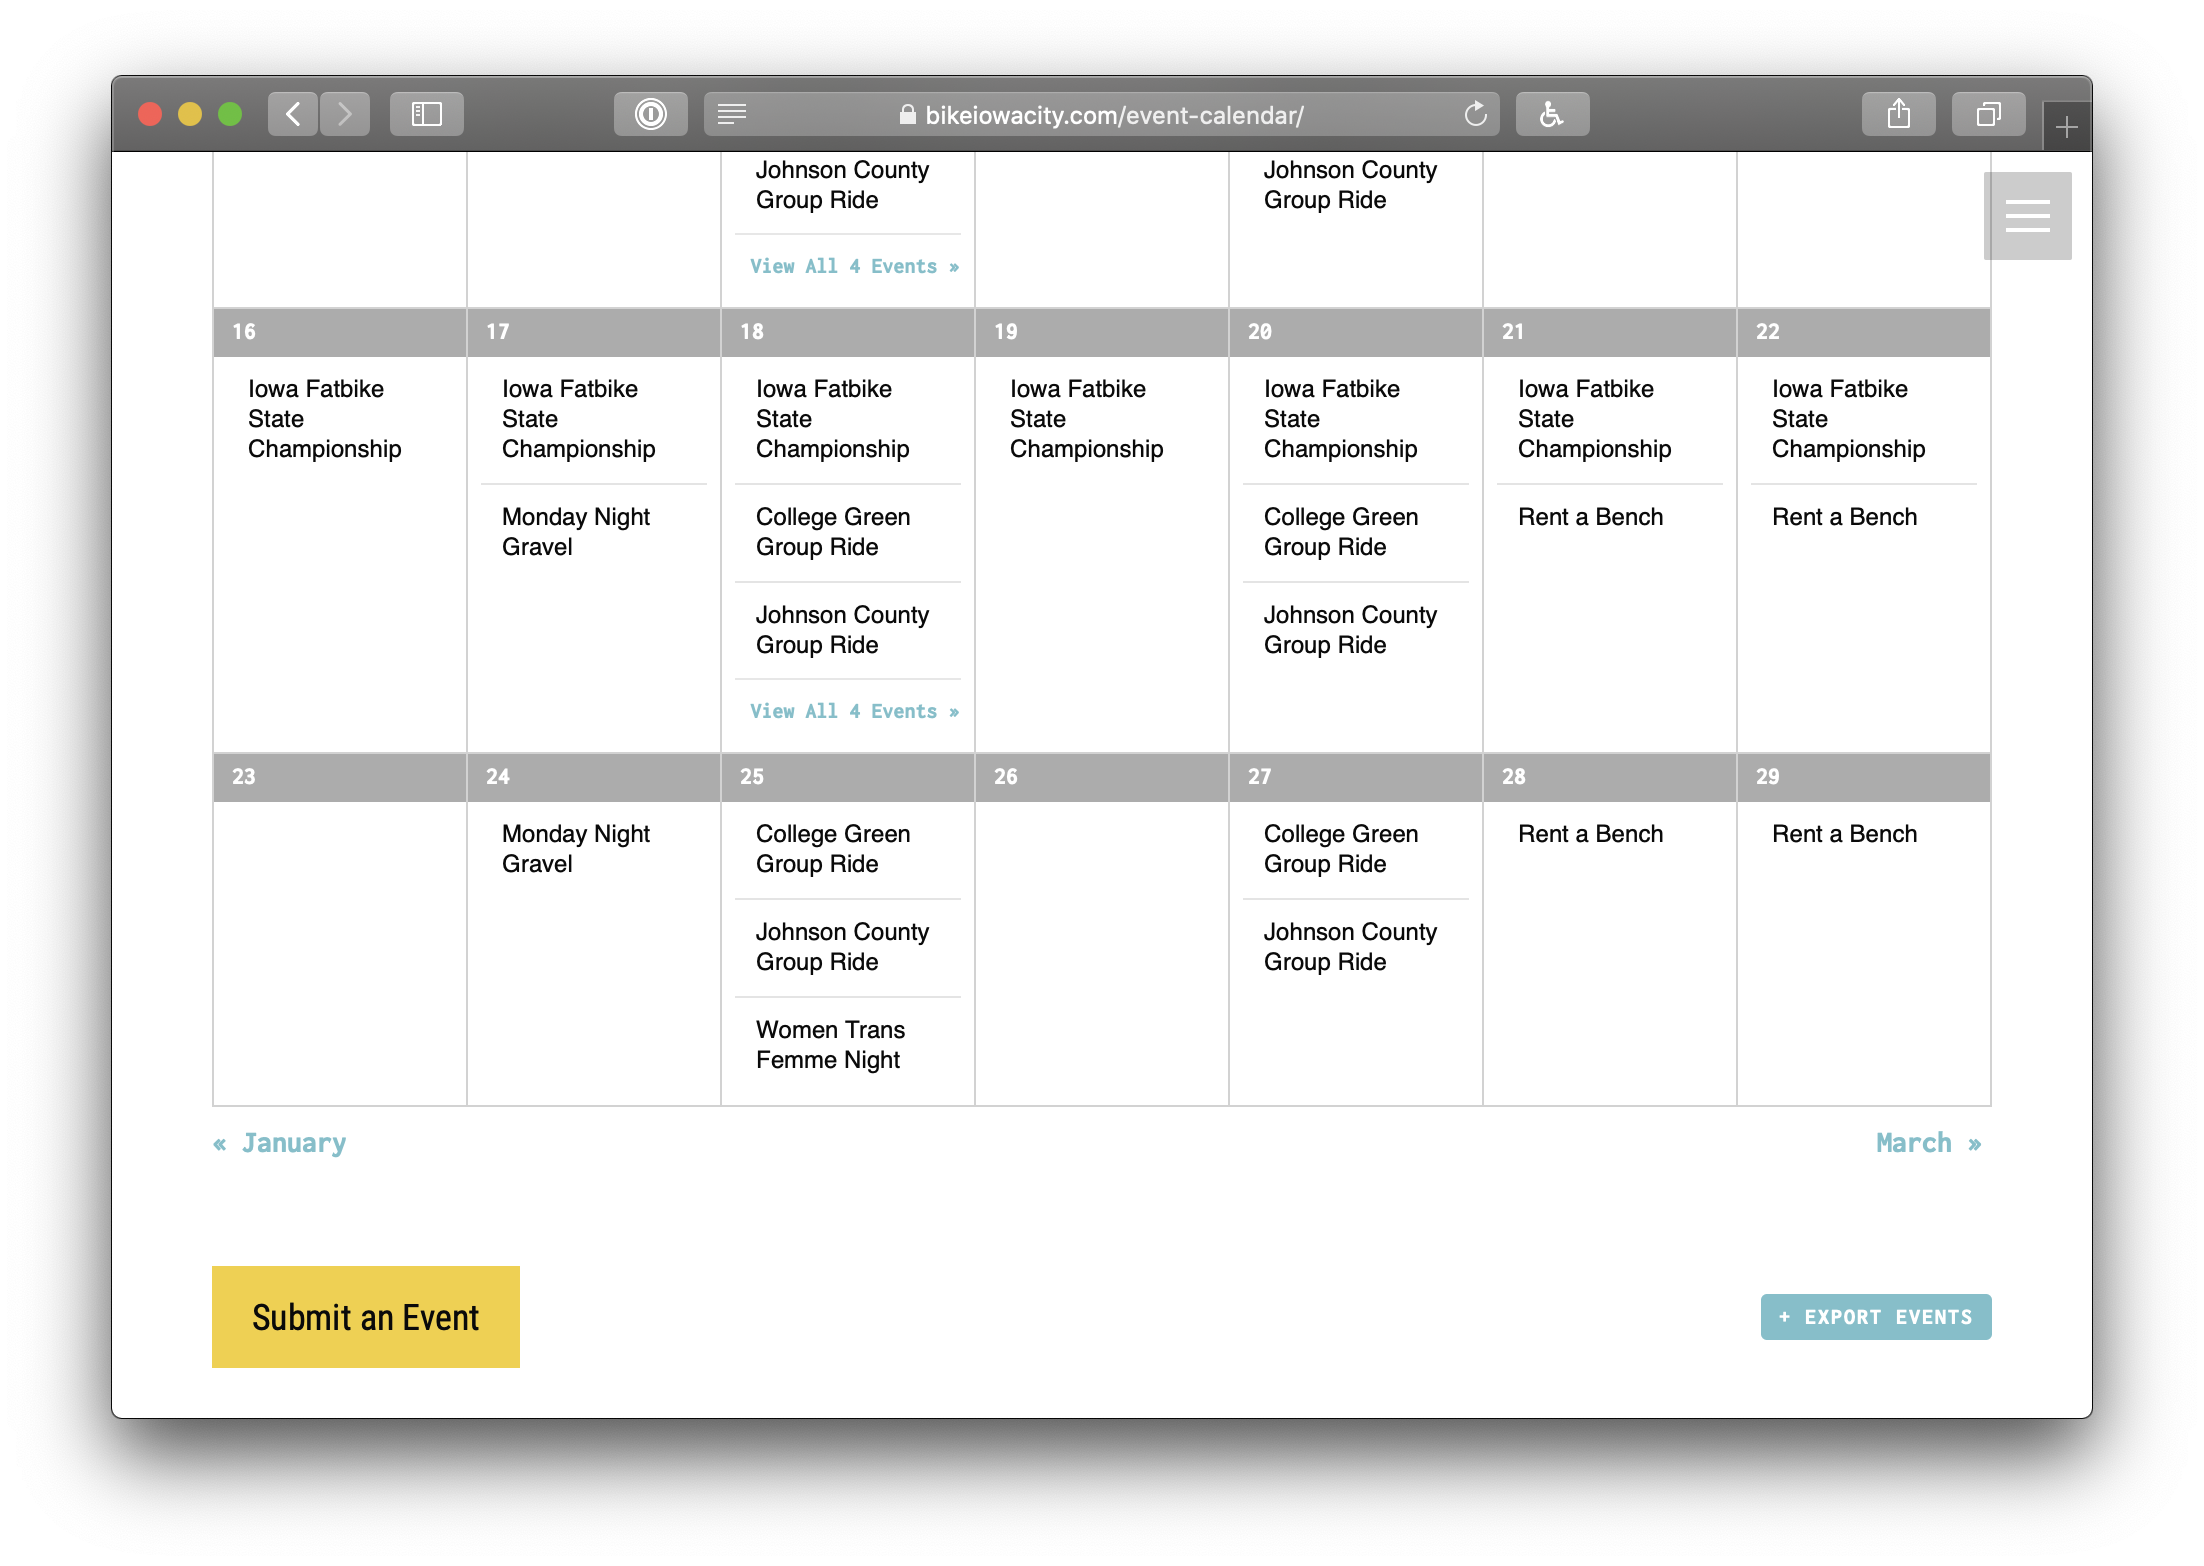 Showing the bottom of Bike Iowa's calendar which has a large yellow button to submit an event.